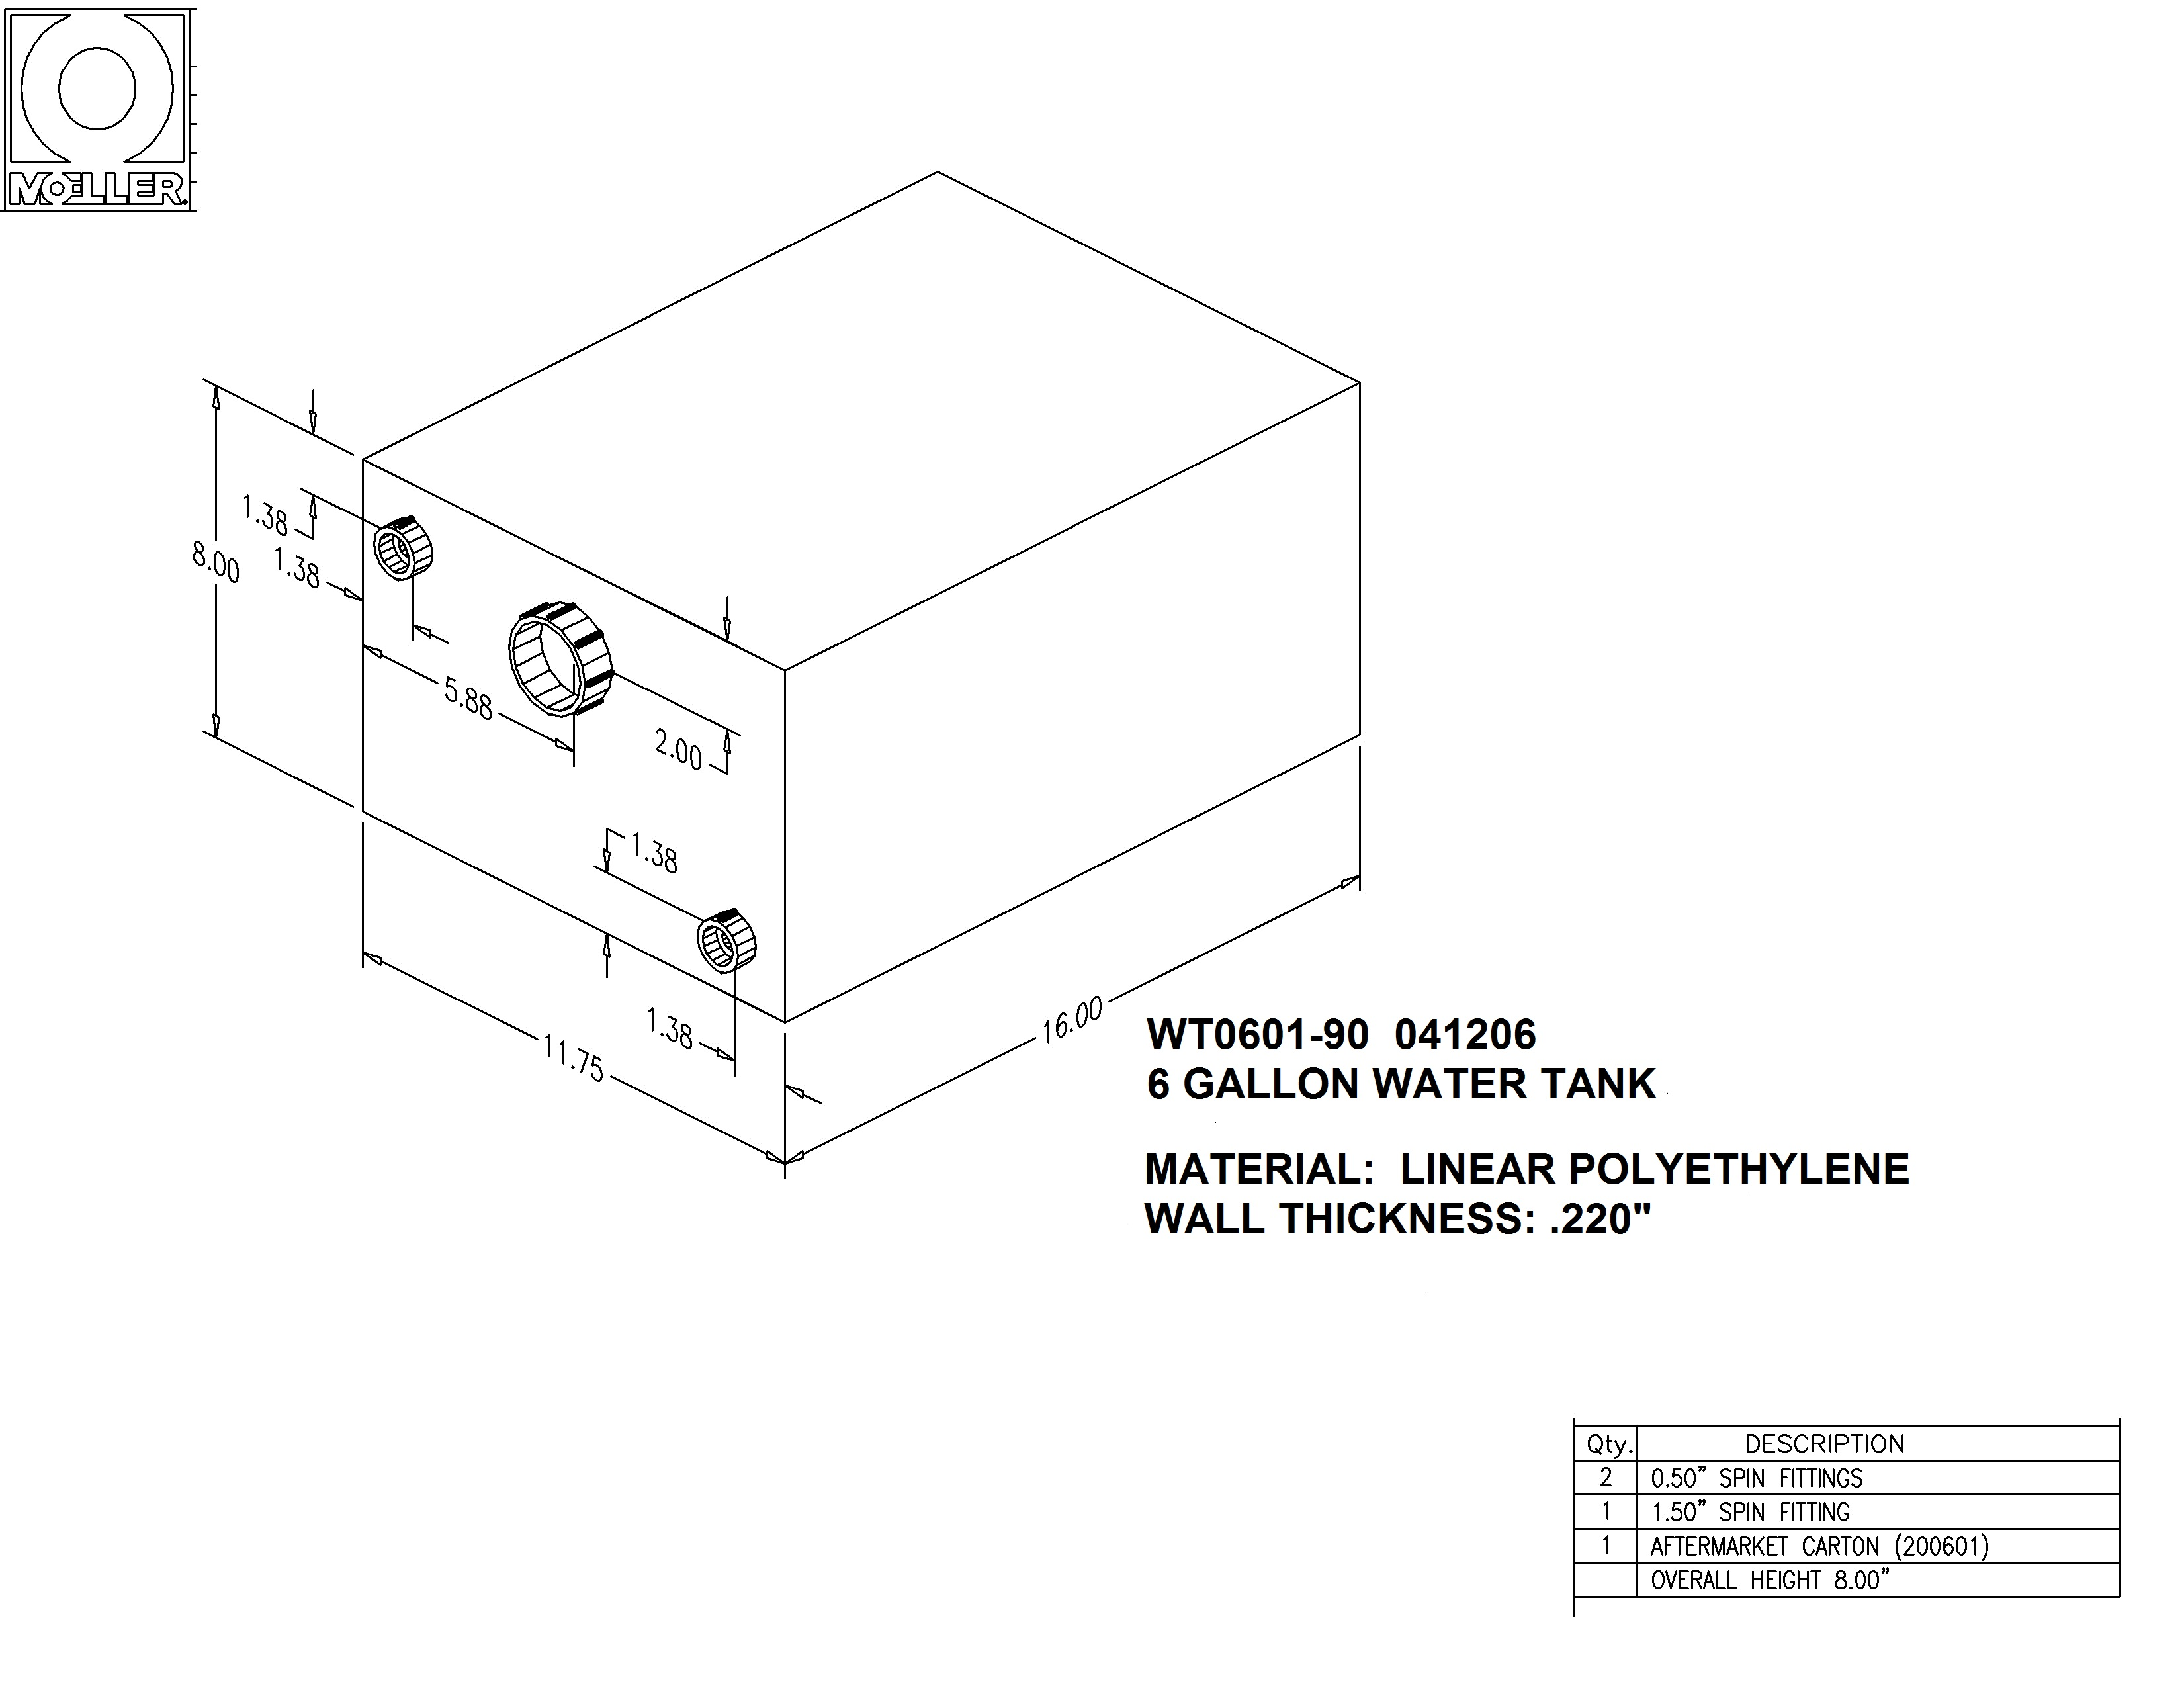 6 Gallon Rectangular Shaped Waste/Water Tank, 17″x11.75″x8″, WT0601-80 (040206)